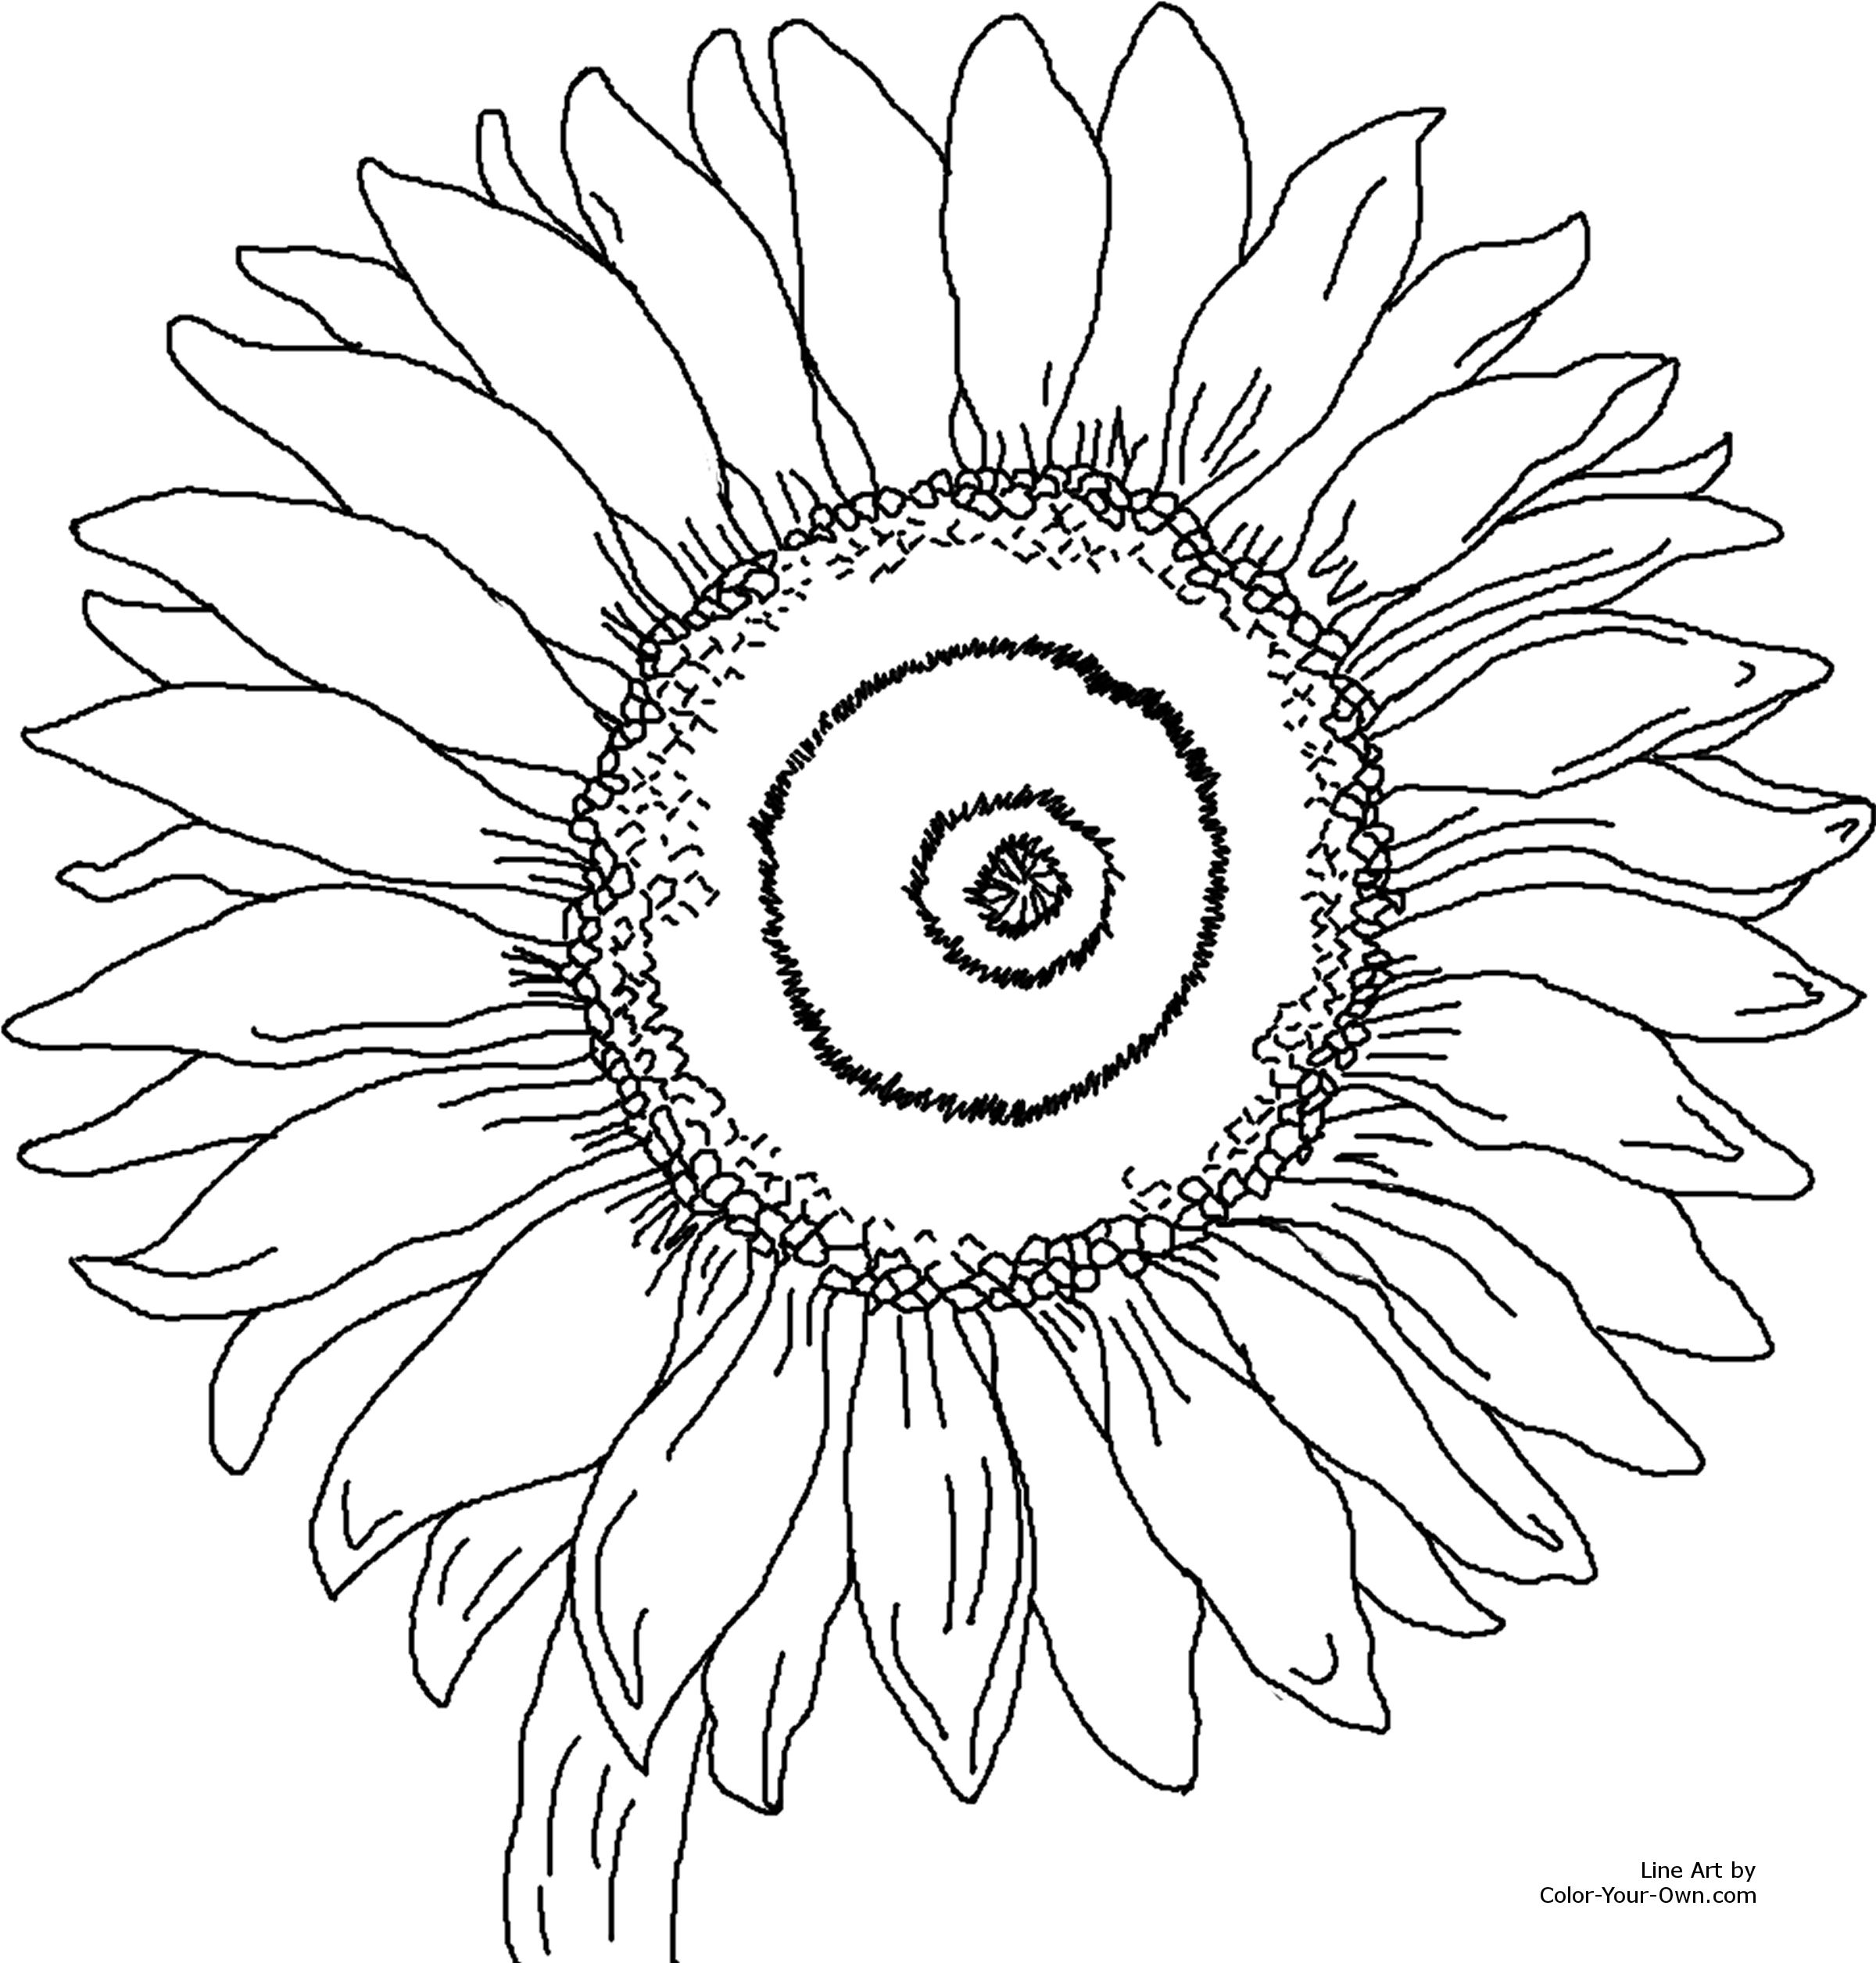 Van Gogh Sunflowers Coloring Page at GetDrawings.com.